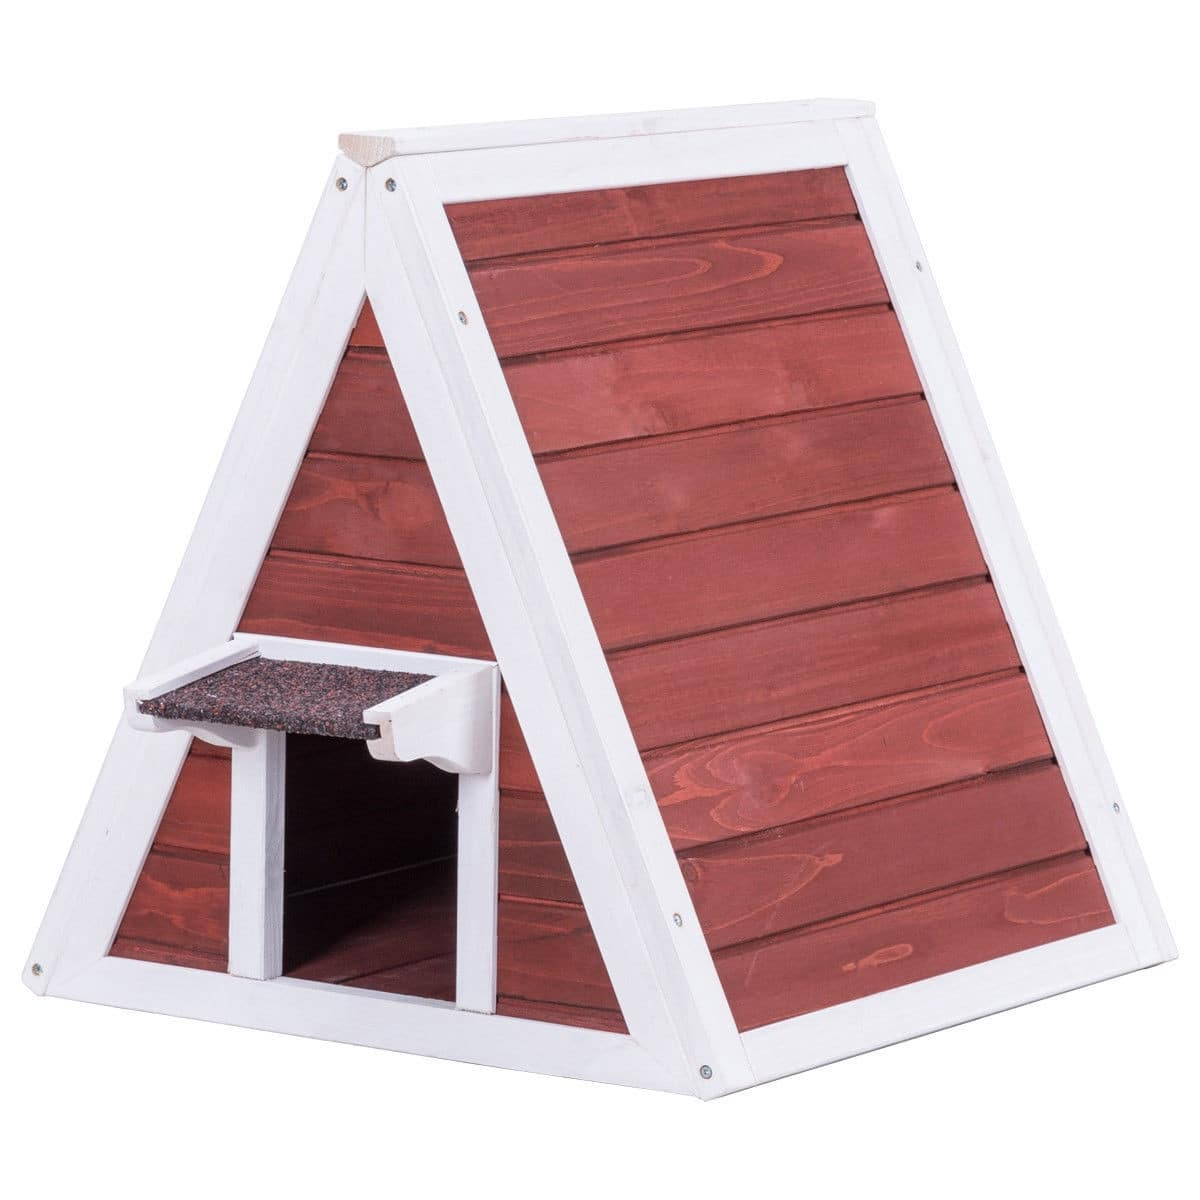 Weatherproof Wooden Cat House Furniture Shelter with Eave-$48.95 + FS